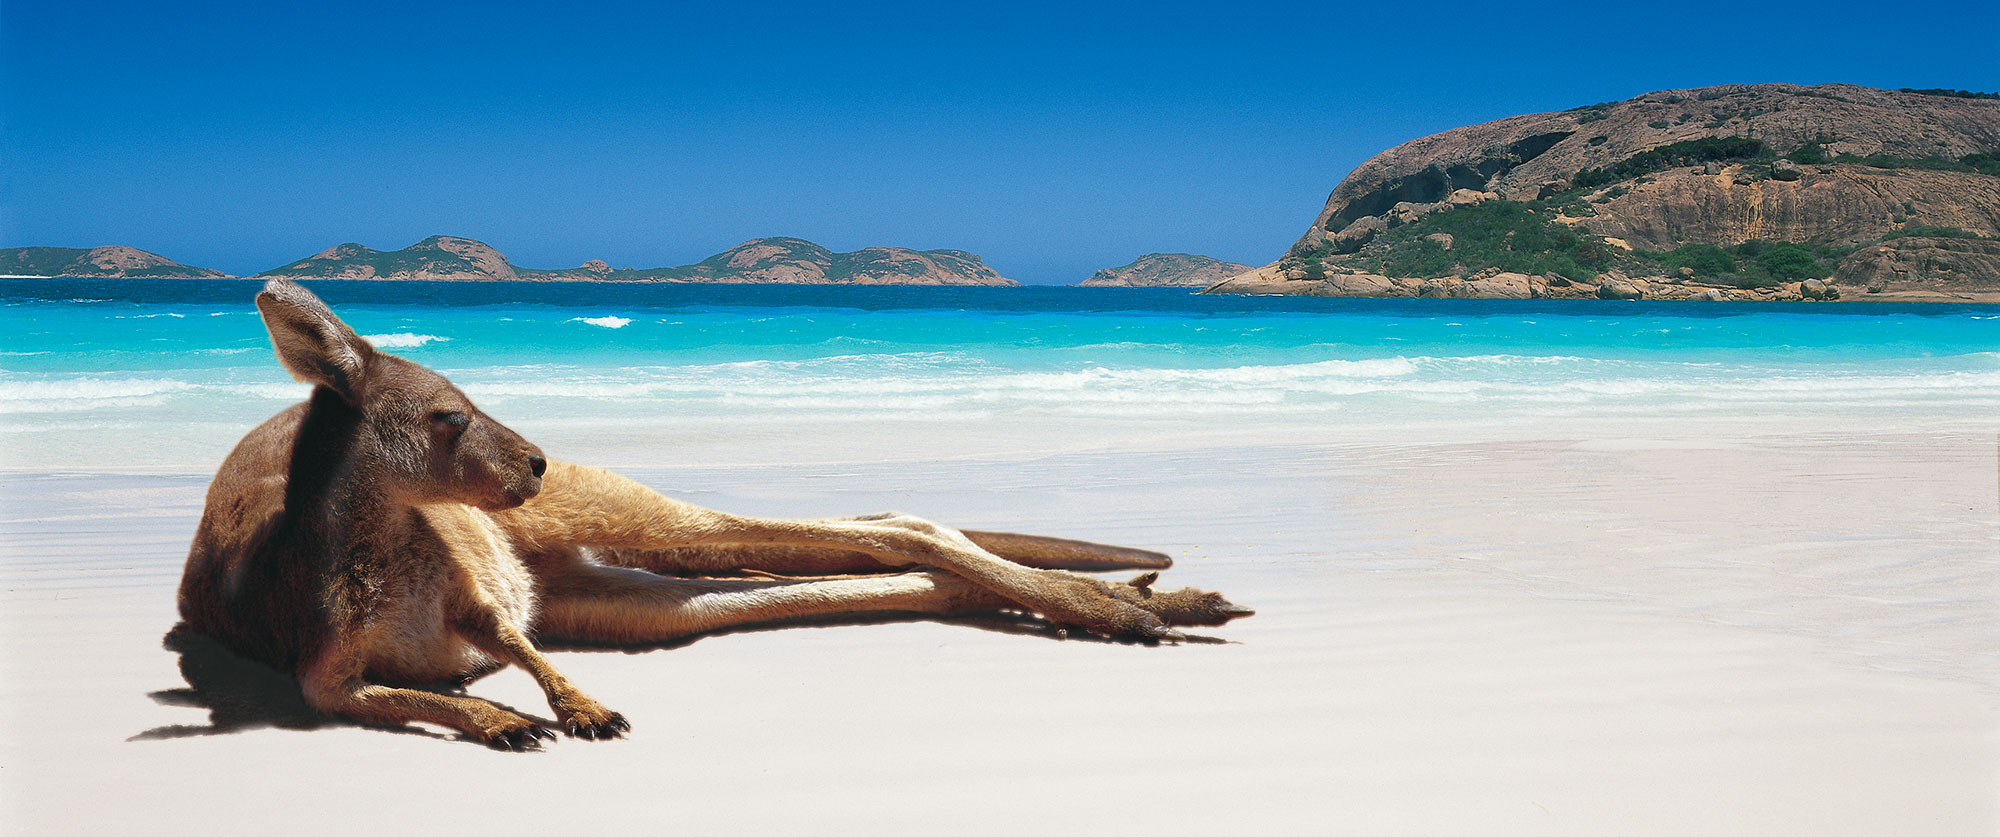 Australia Luxury Travel Experts - Frequently Asked Questions